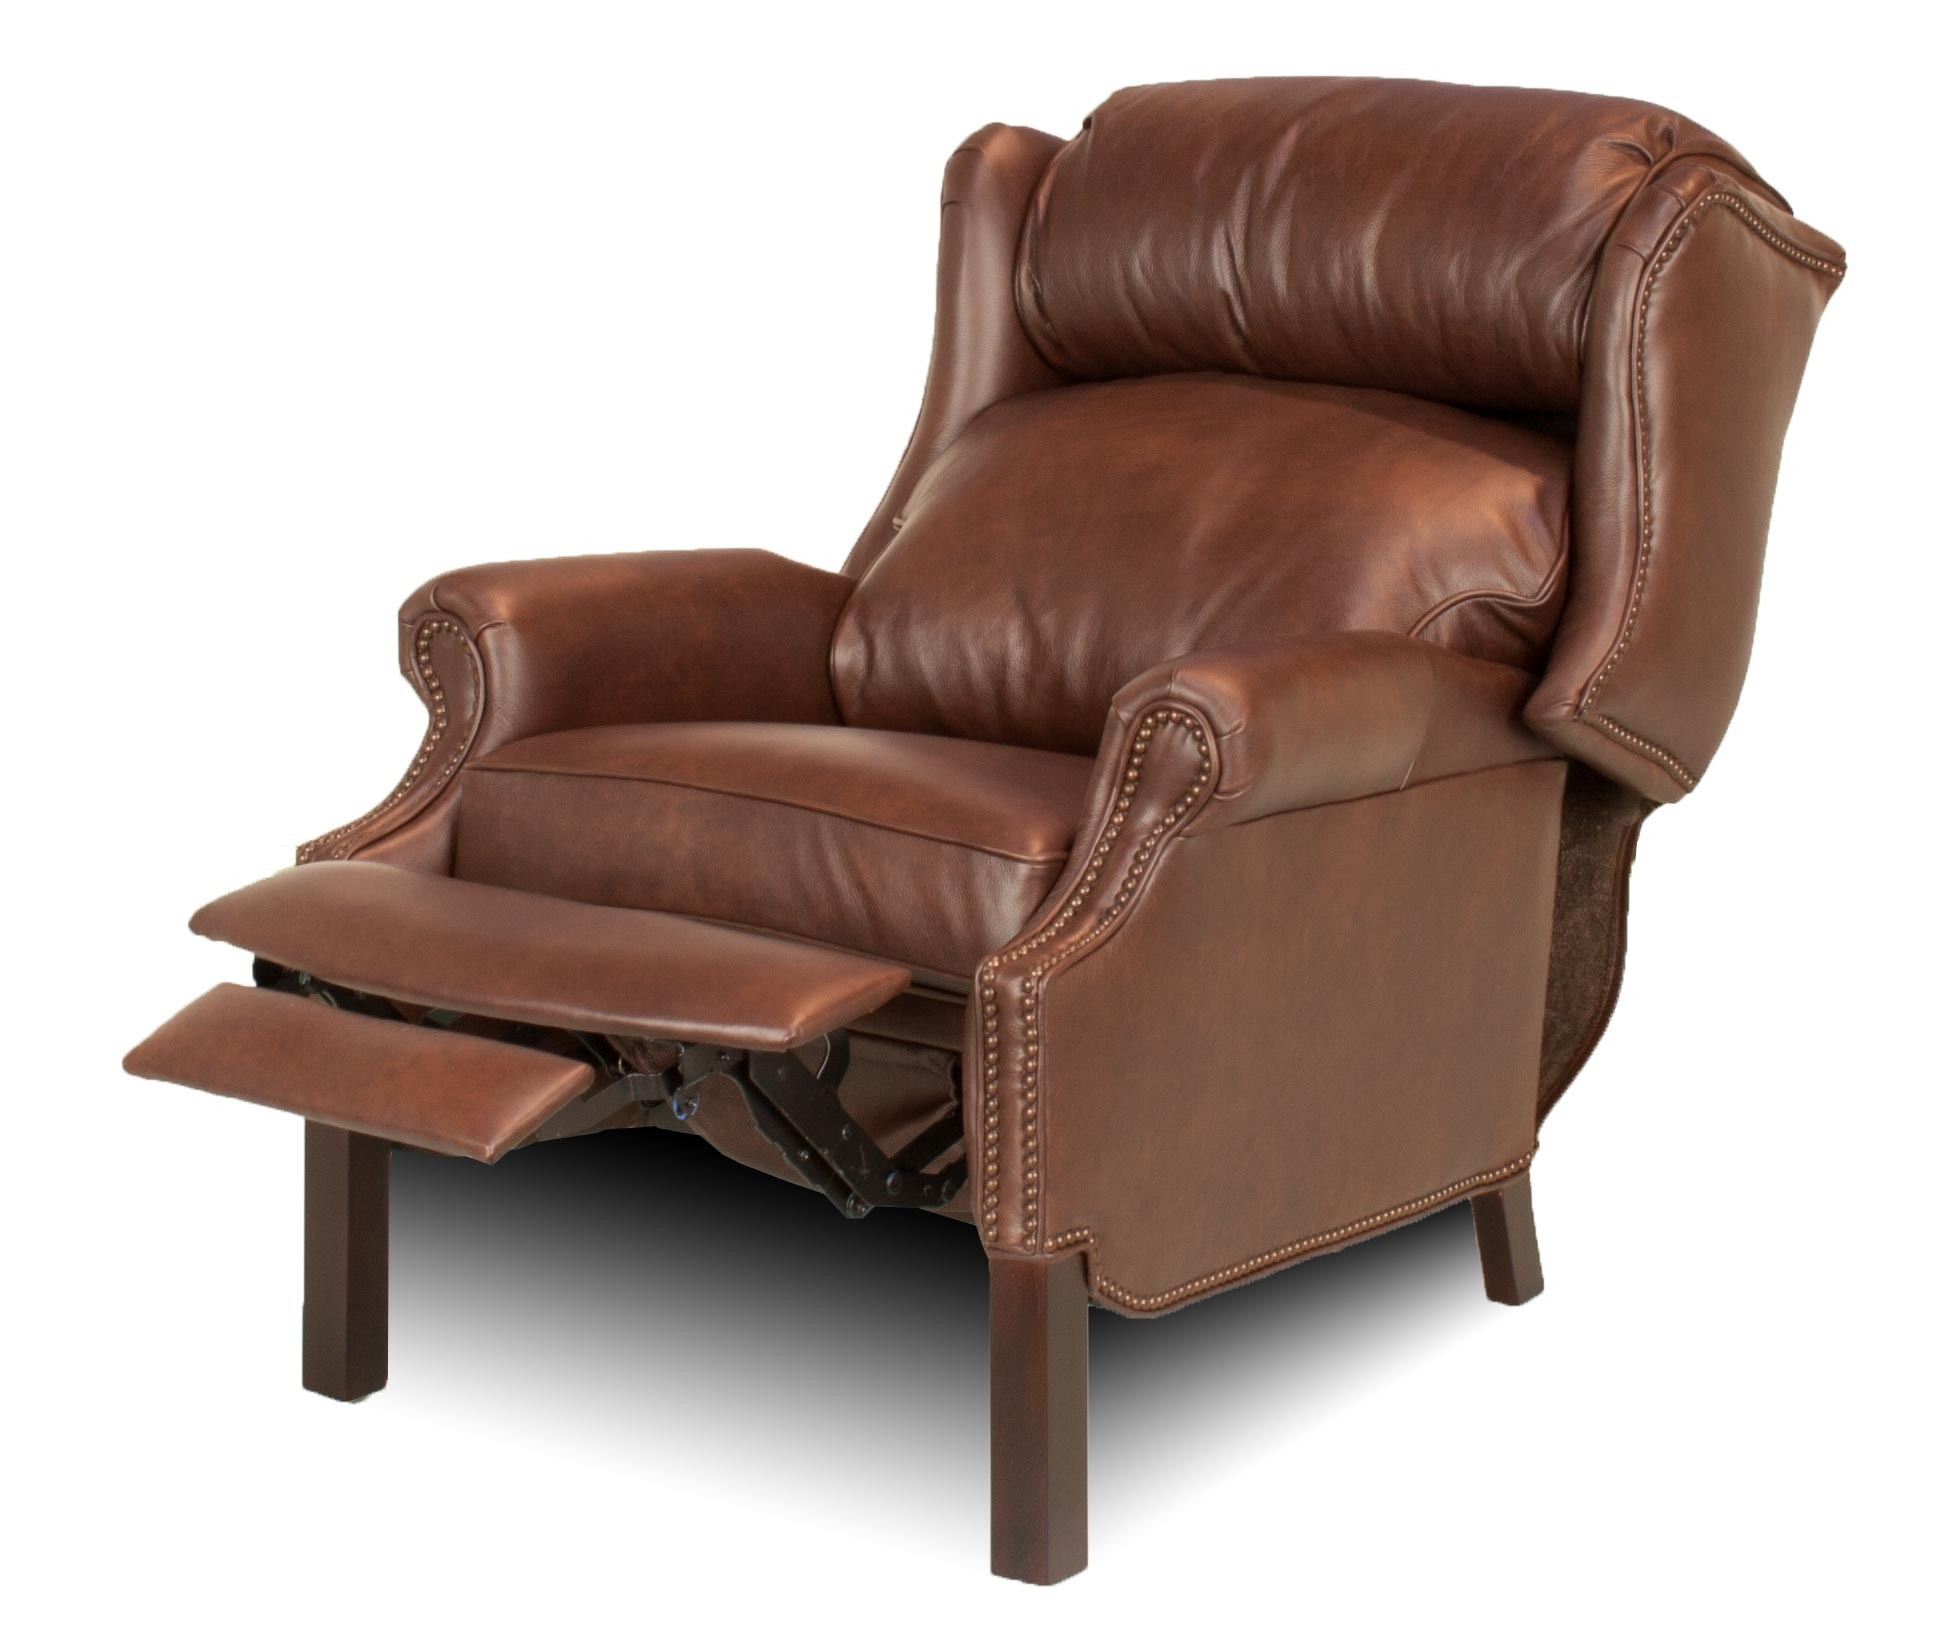 Merveilleux Lazy Boy Wingback Chairs